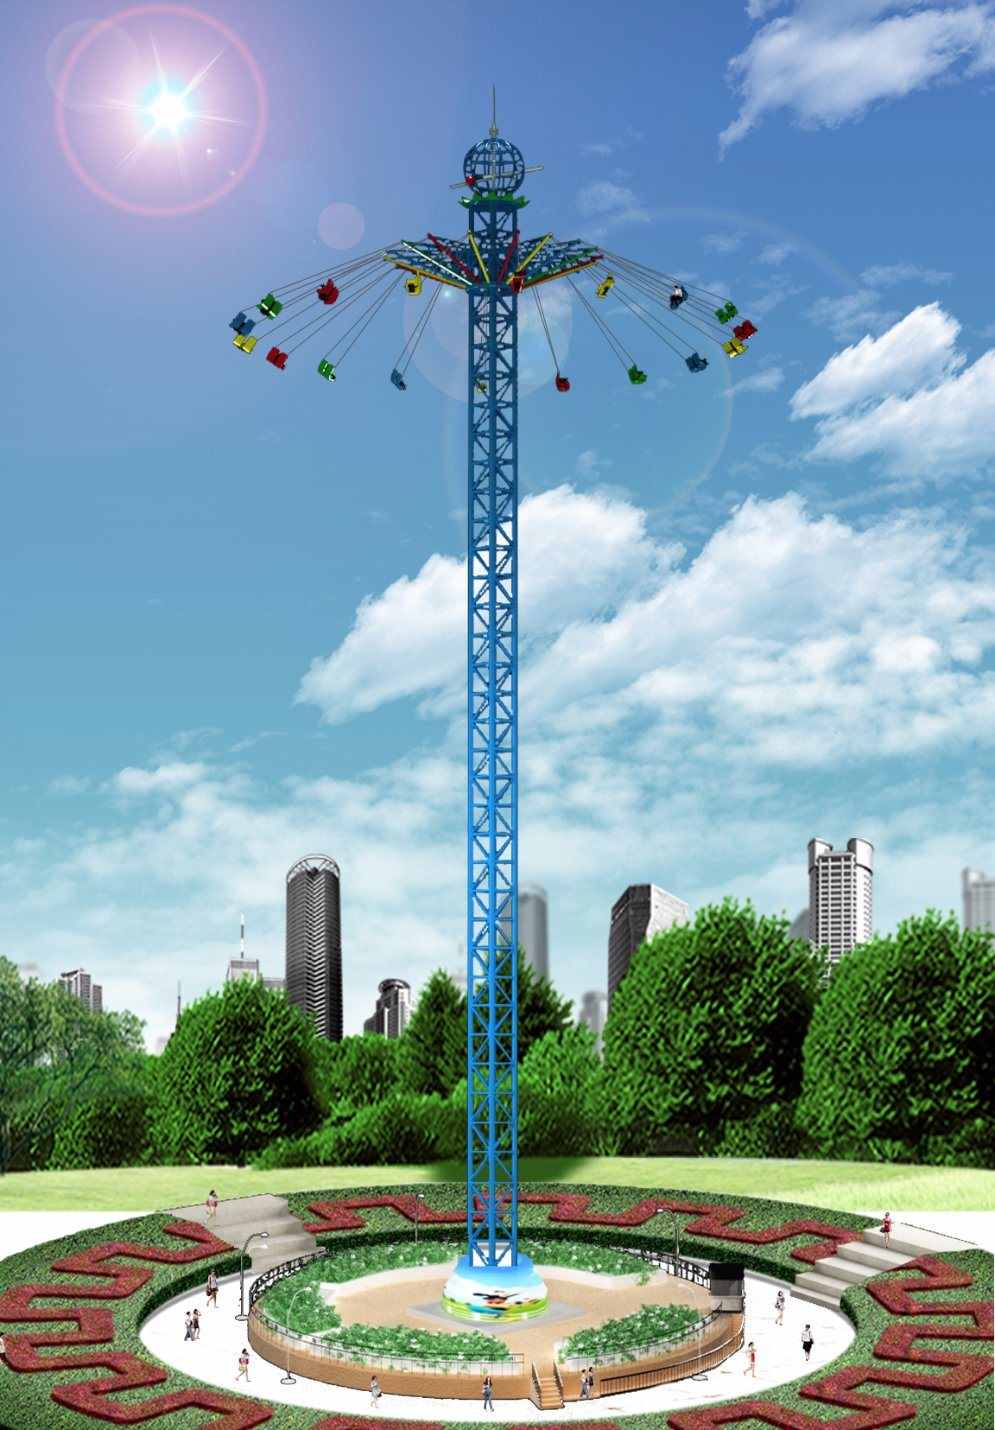 Tourist Attraction Carnival Rides Flying to Sky Tower